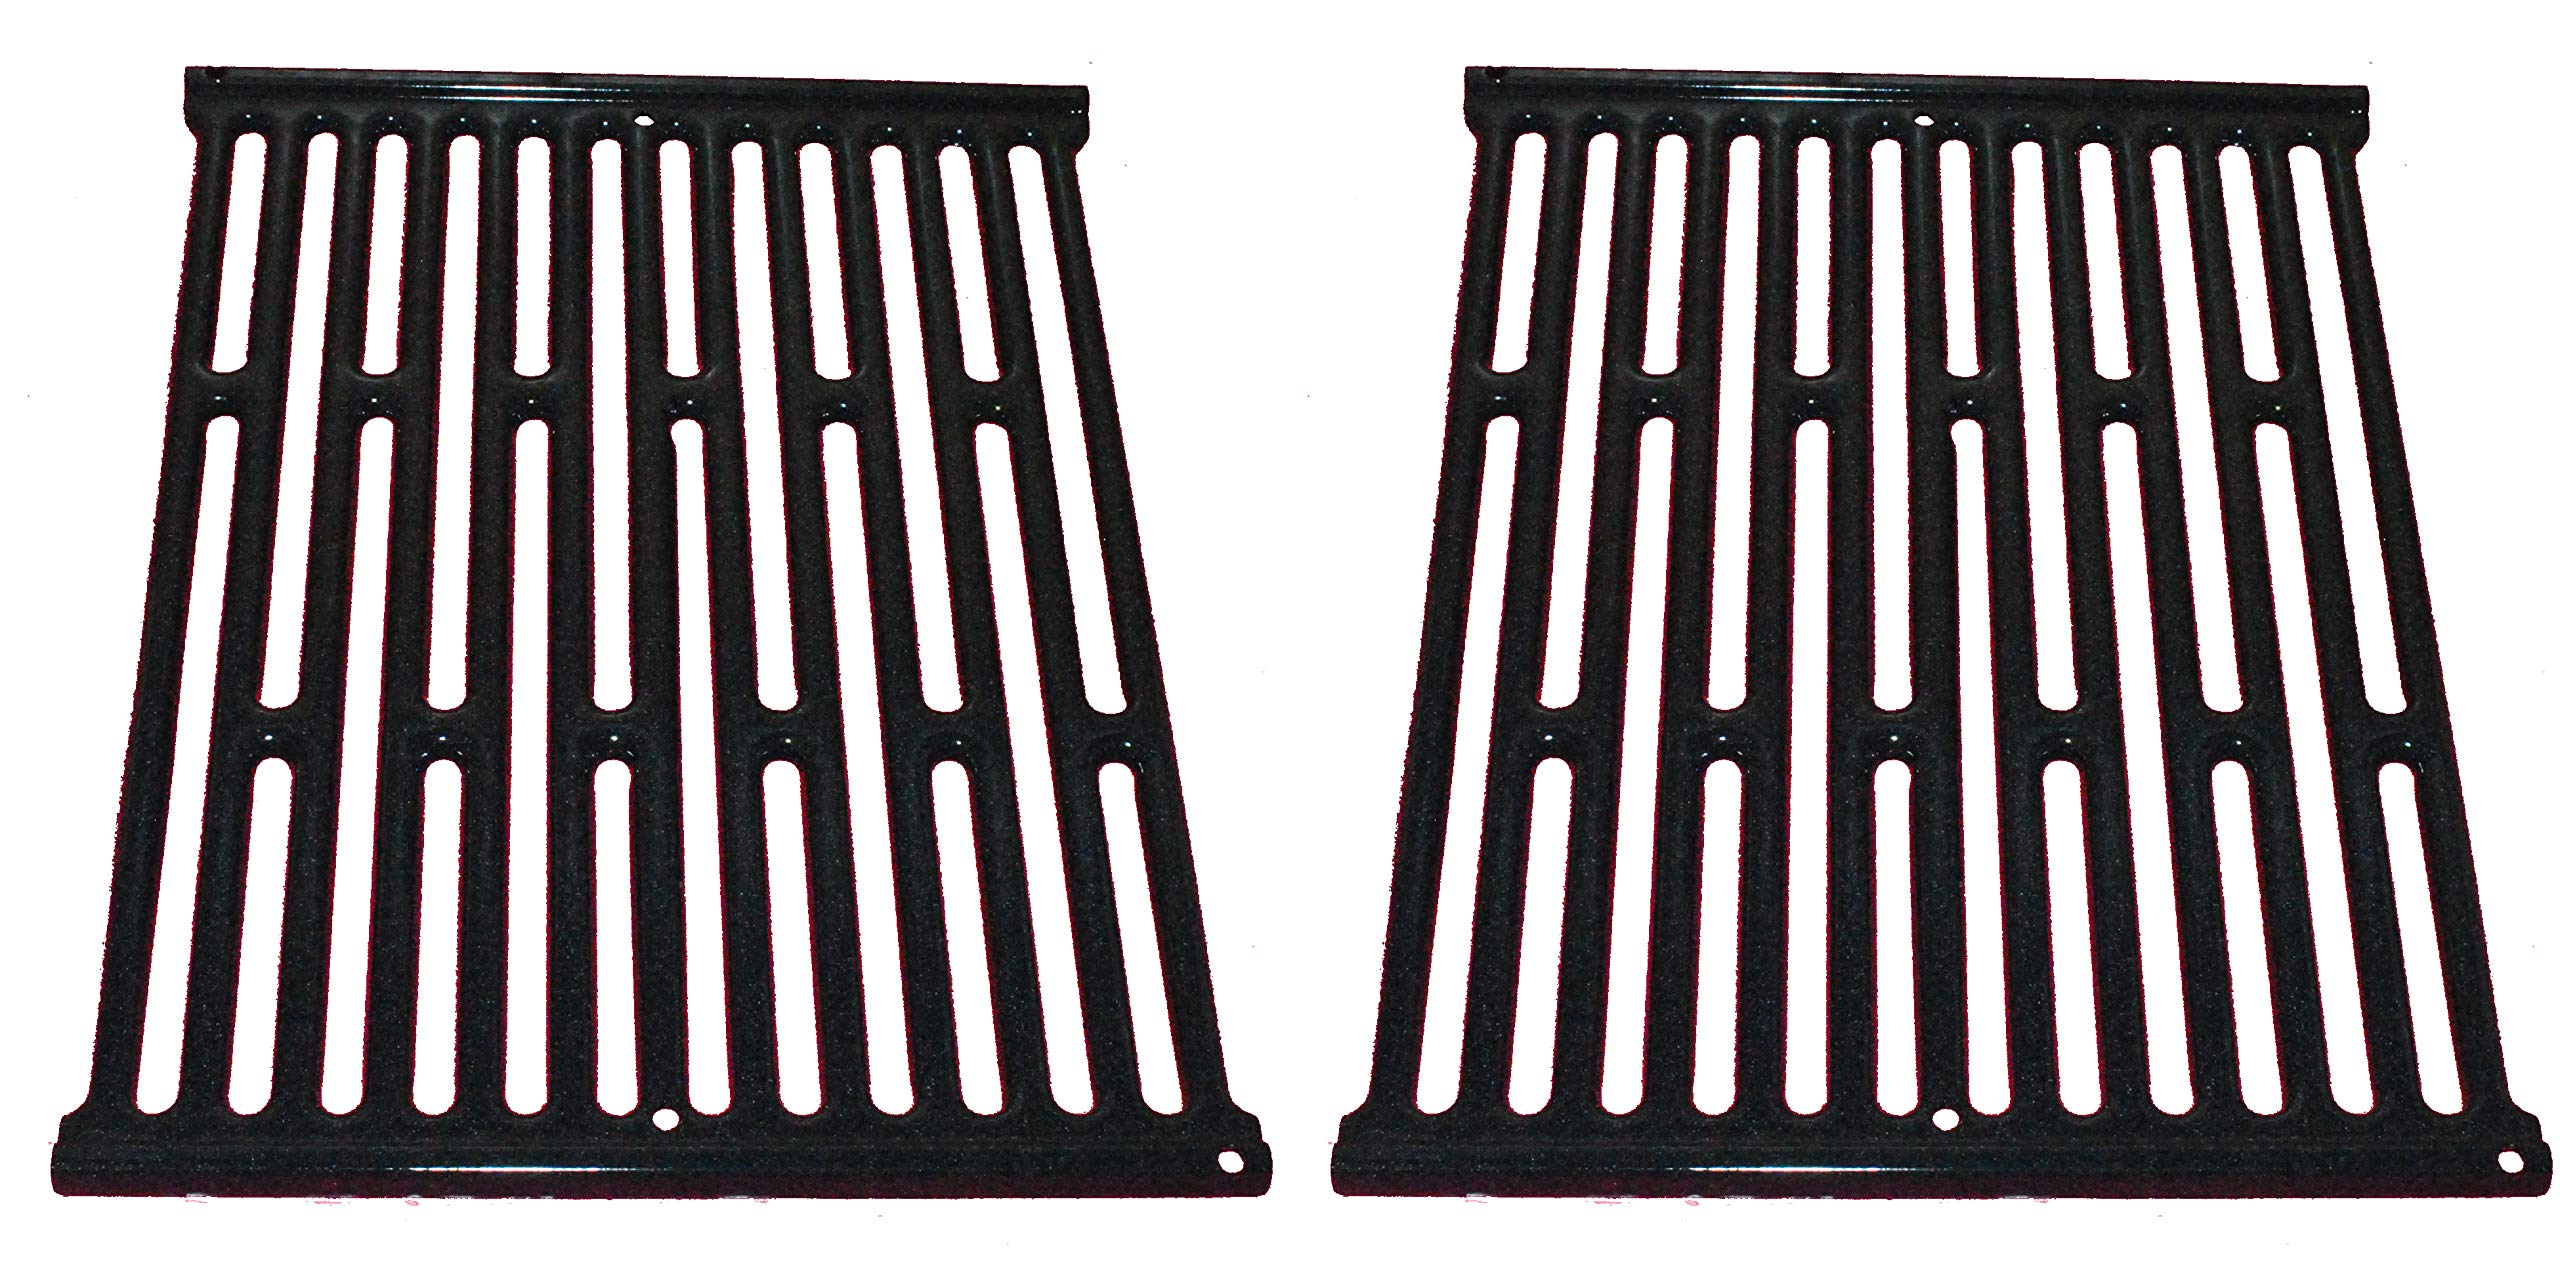 Weber 65904 (11-1/4'' x 15'') 2PK Silv A Porcelain Enameled Grate. Replaces 7523 by Weber